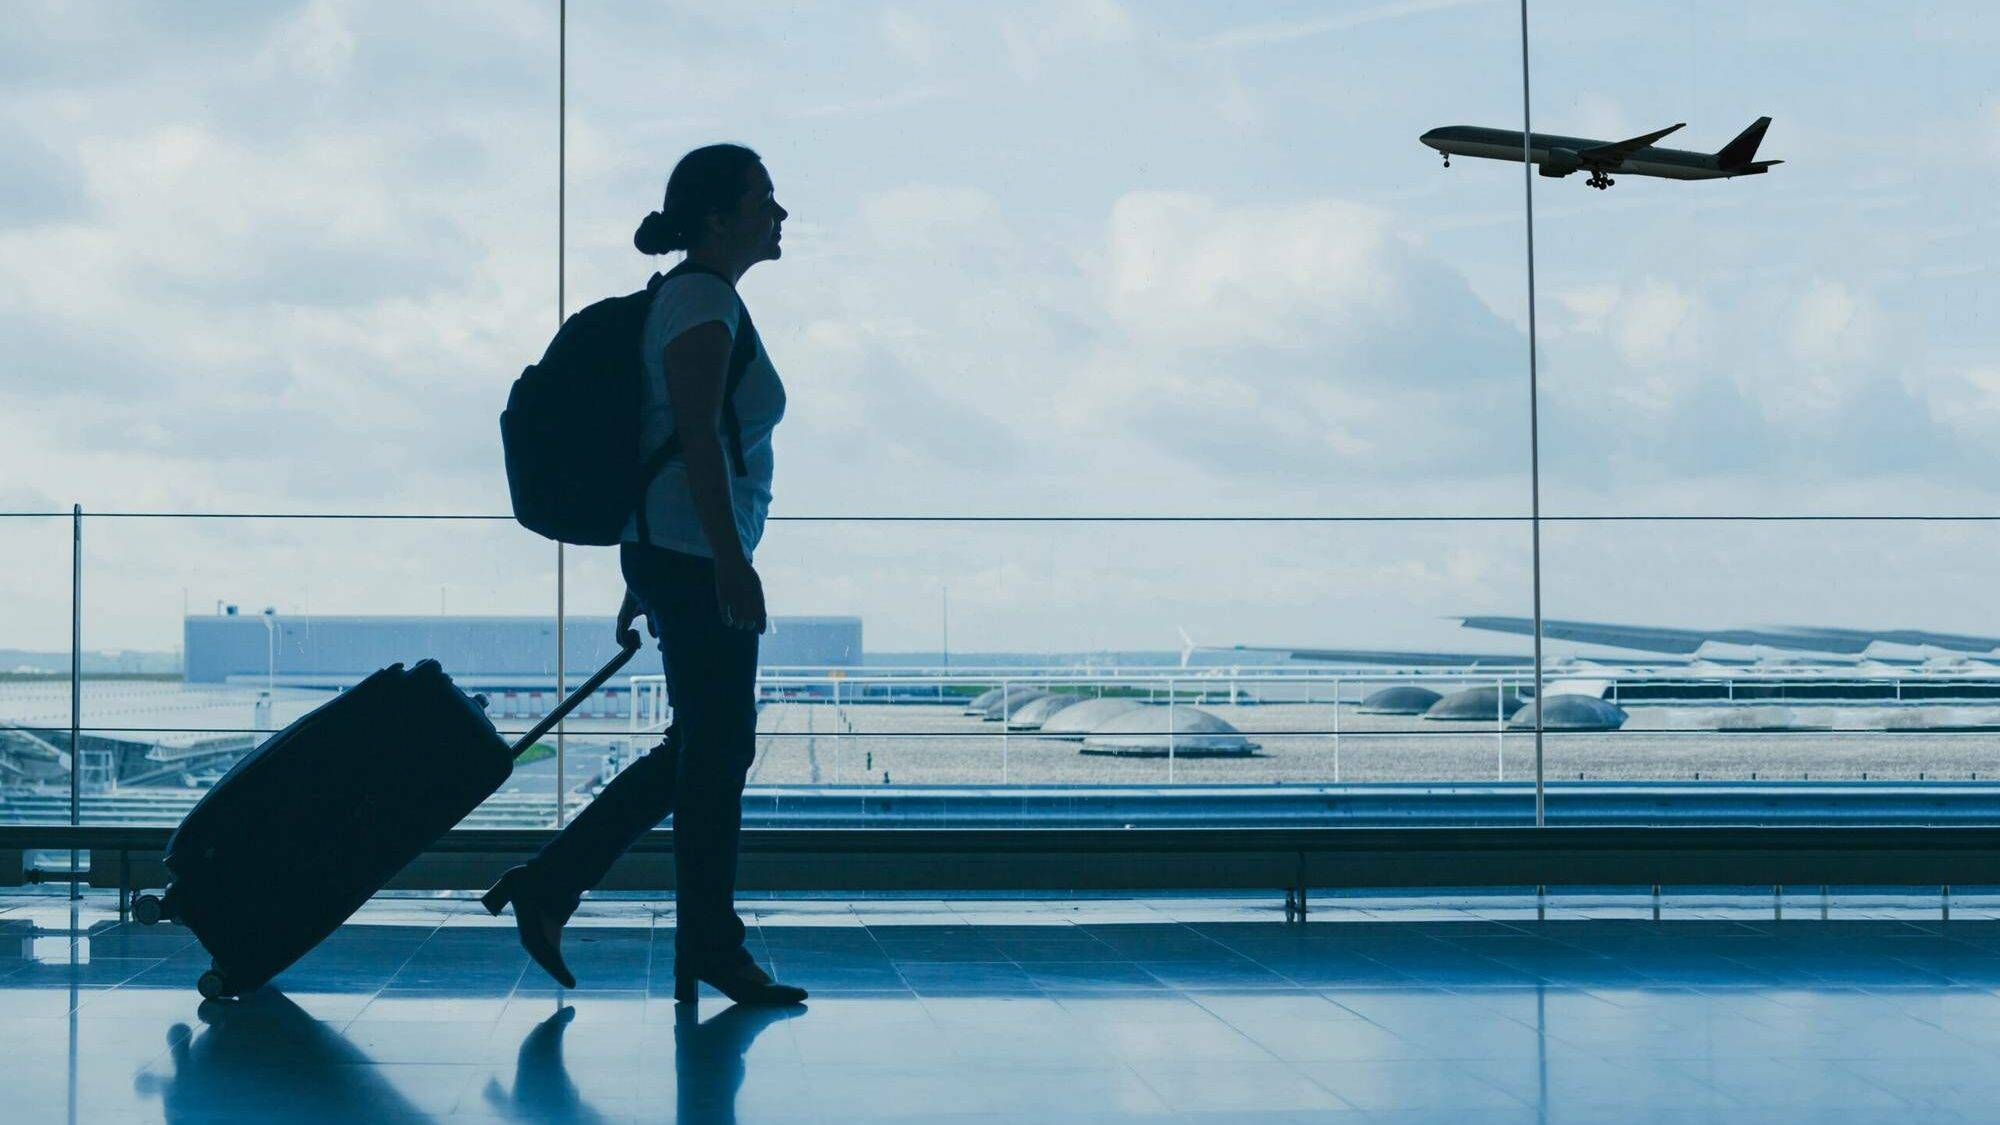 Photo of a travel in silhouette walking in an airport carrying luggage while an airplane flies in the sky, life outside the US